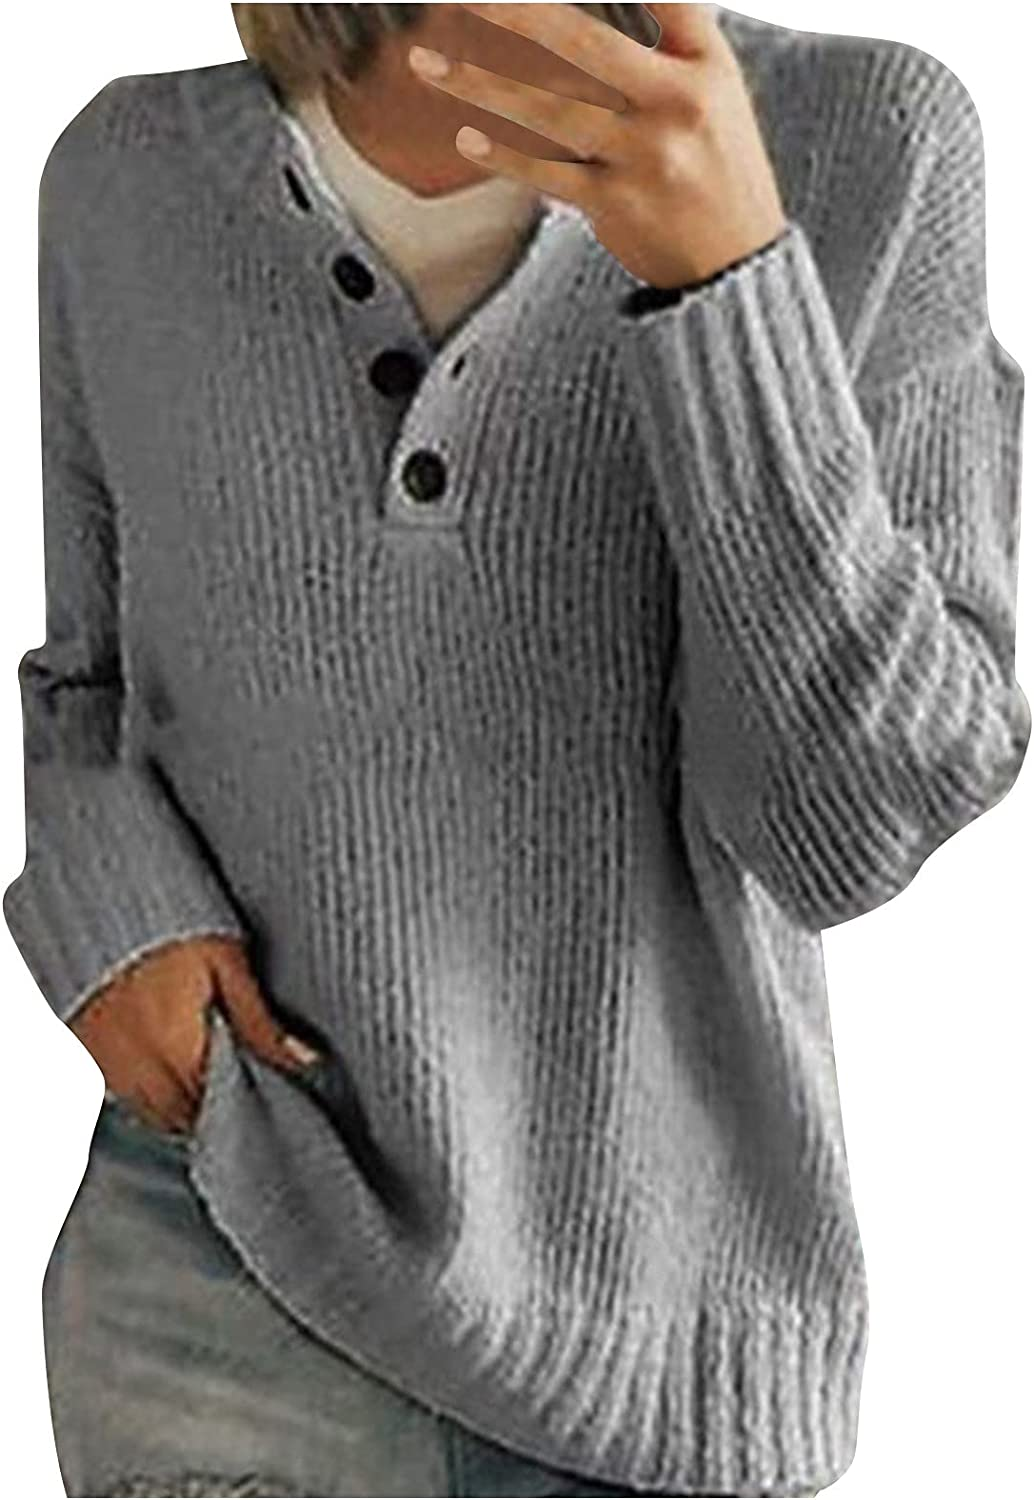 Sweaters for WomenV Neck Sweater Long Sleeve Knit Button Sweater Solid Color Tops Slim Fit